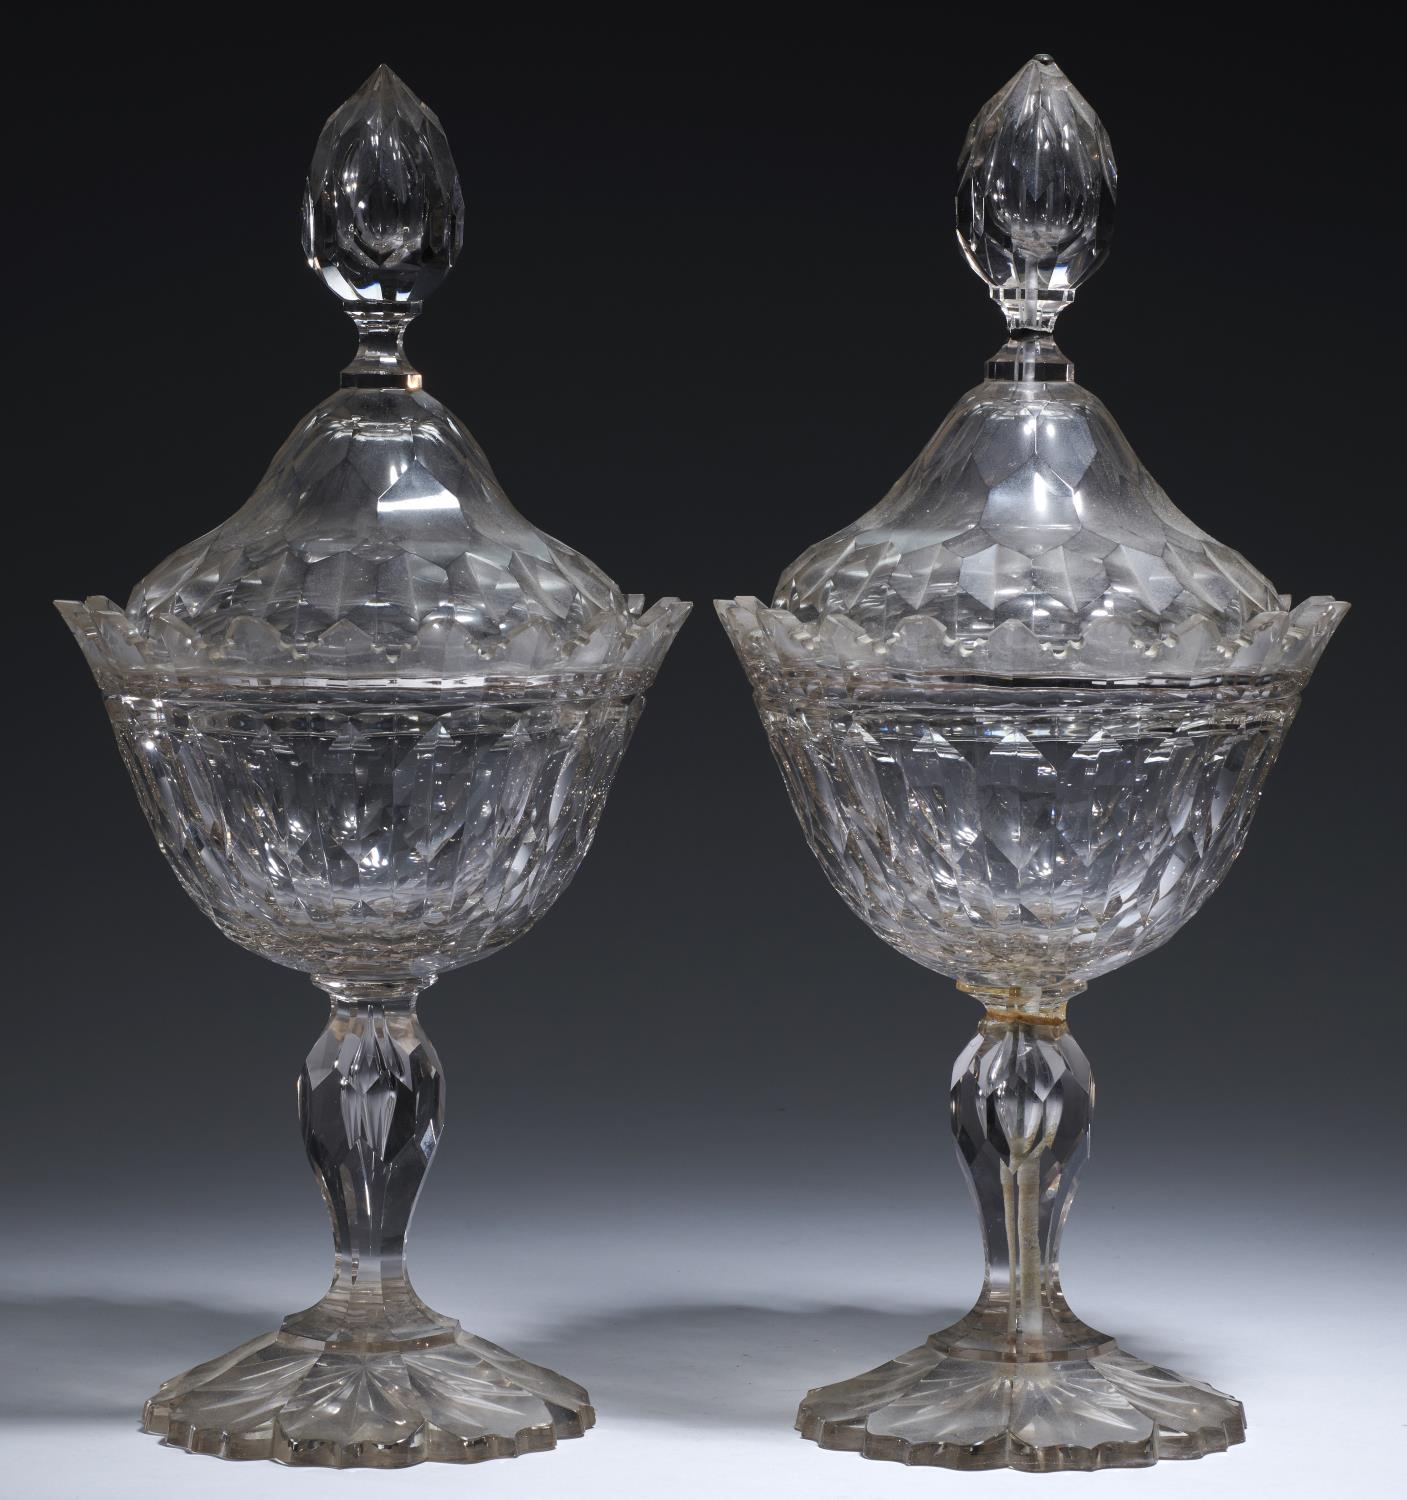 Lot 358 - A PAIR OF VICTORIAN HEXAGON CUT GLASS SWEETMEAT VASES AND COVERS, LATE 19TH C 39cm h Knop and